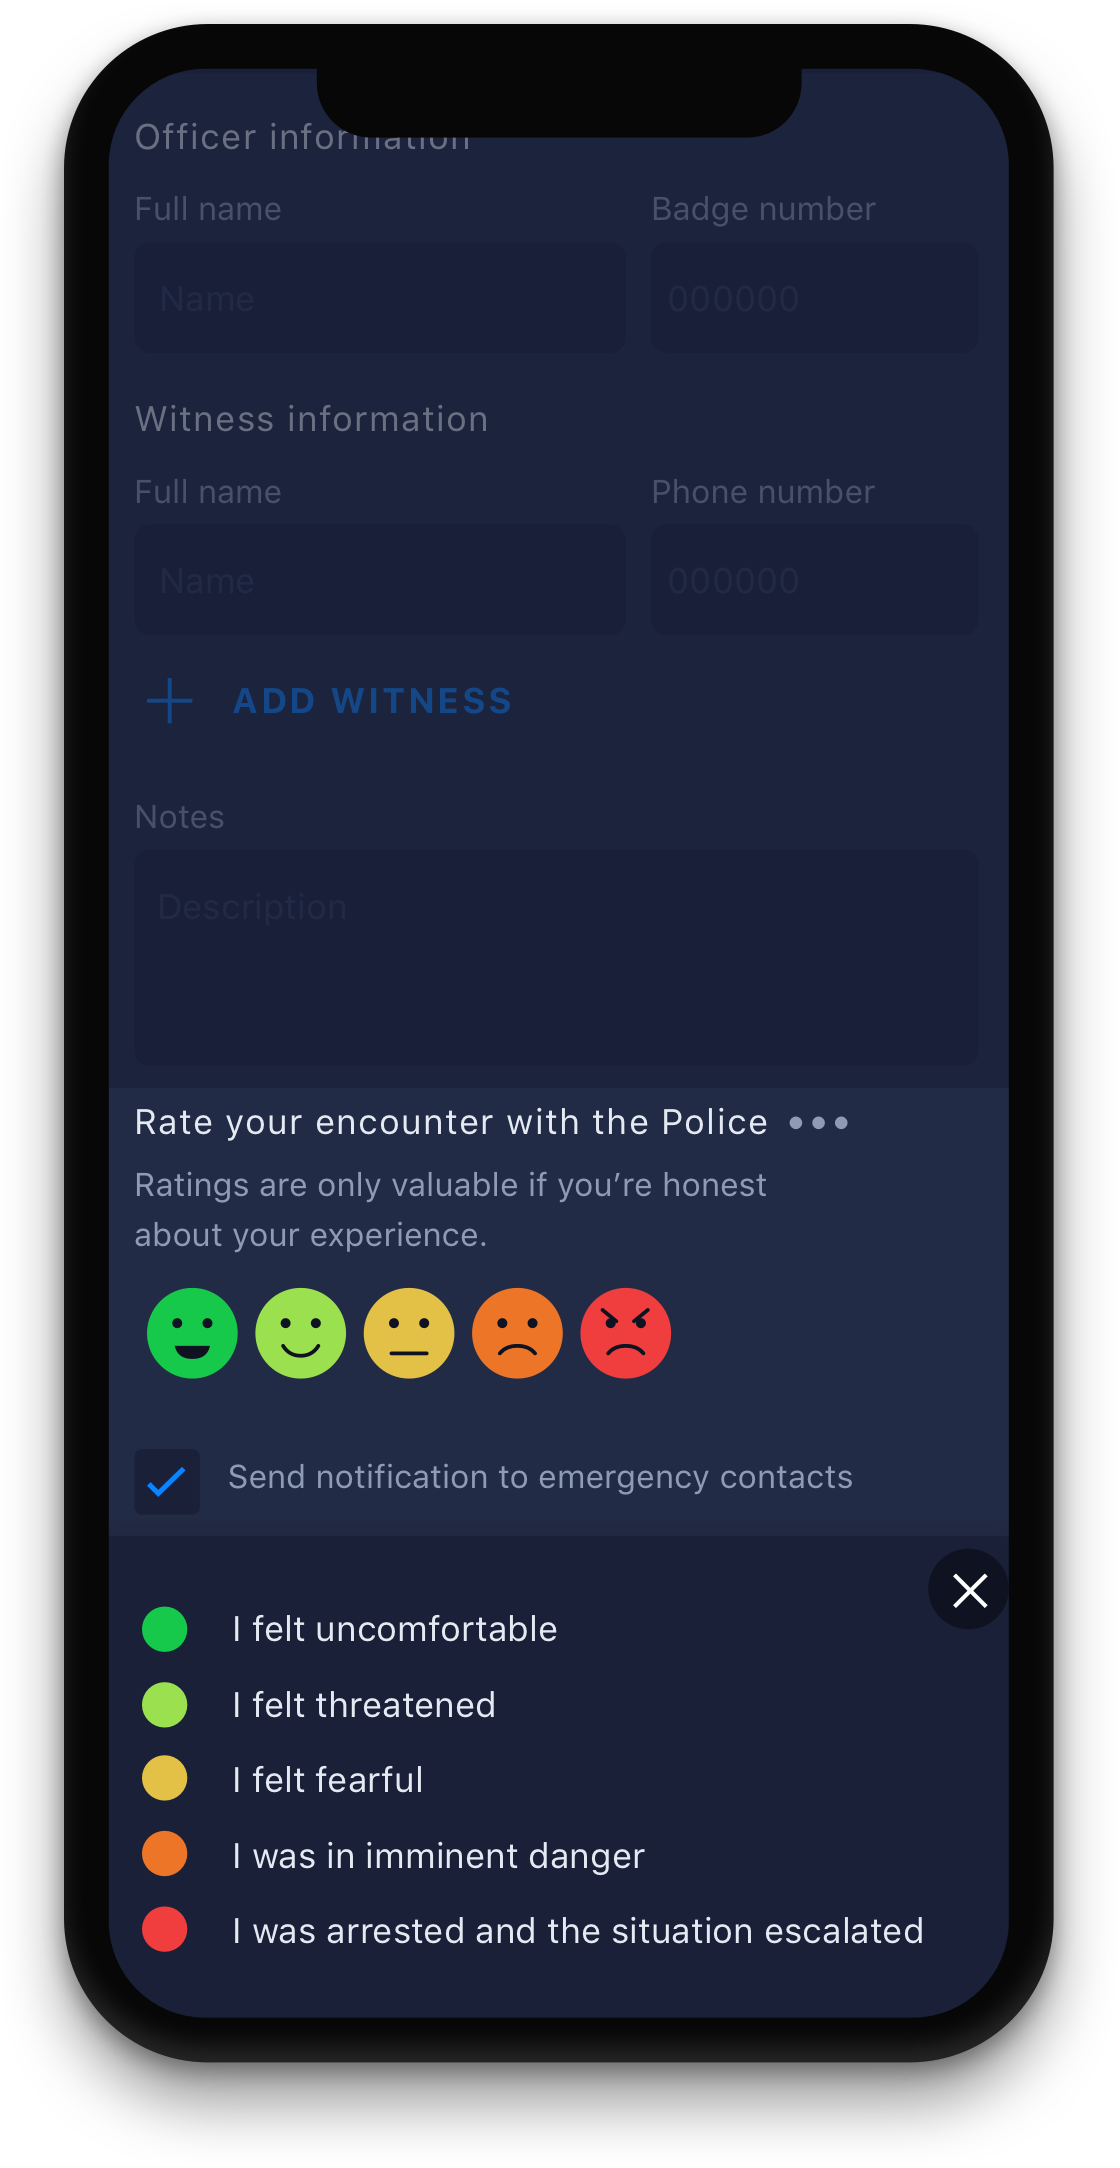 Cavalry App  police ratings